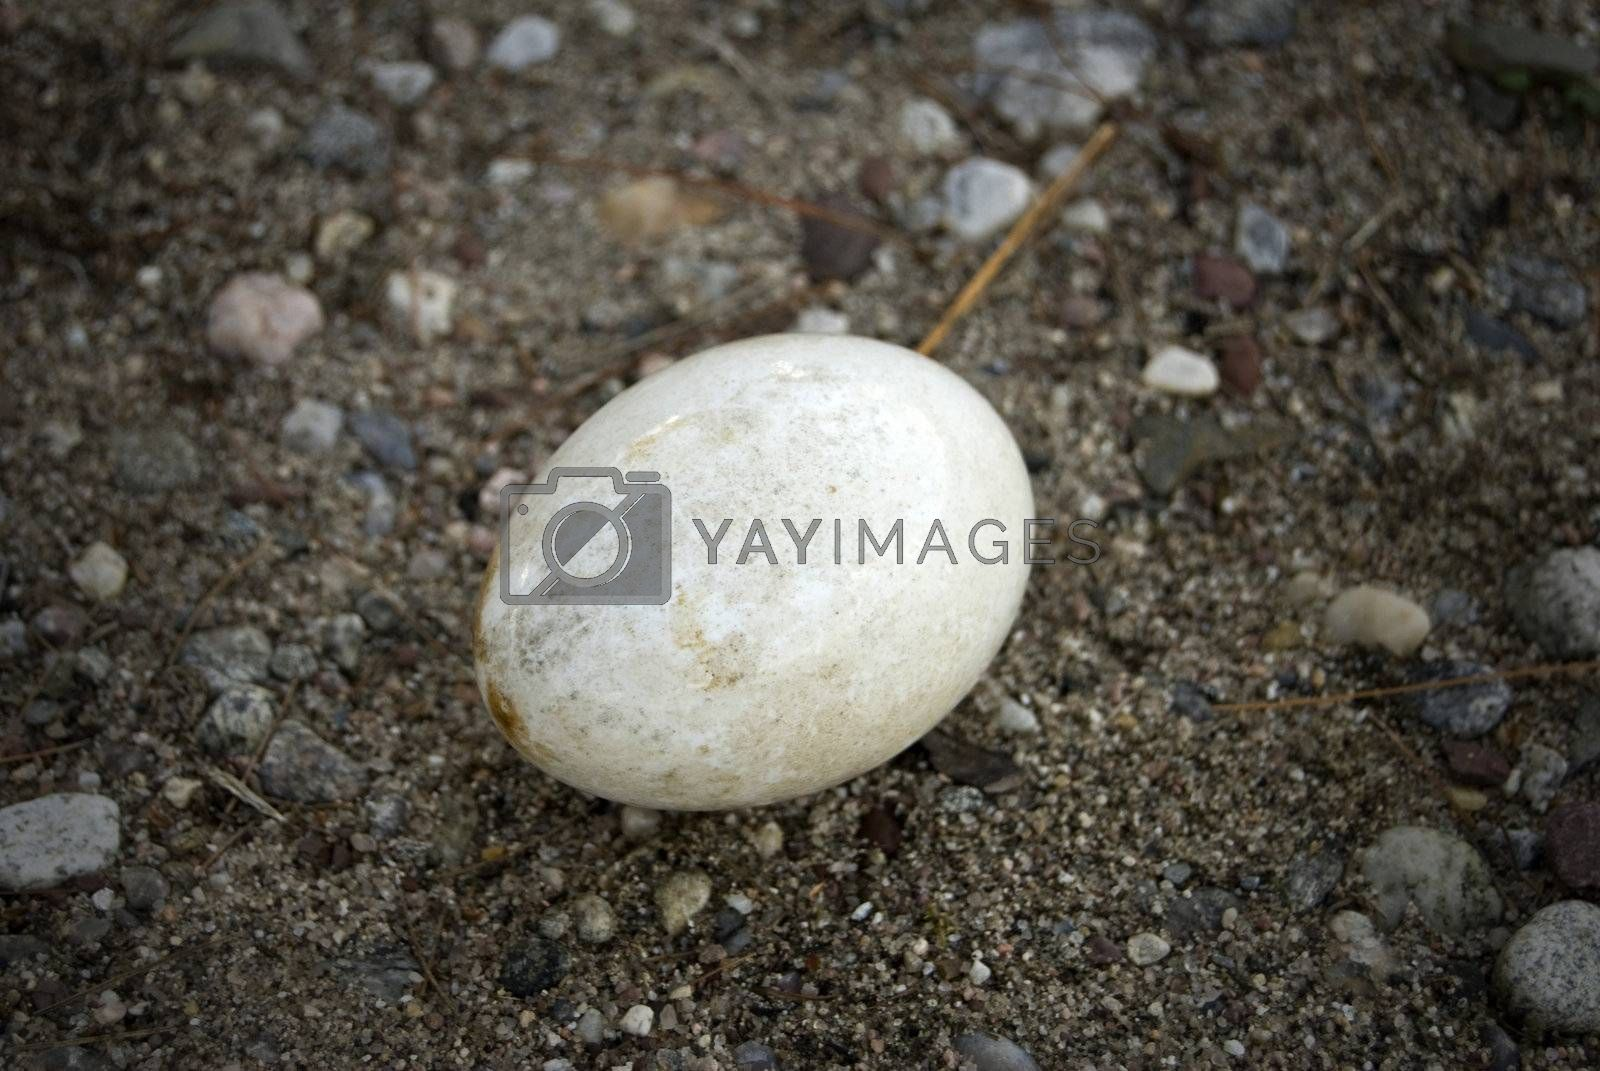 A lonely white goose or duck egg that looks to have washed ashore.